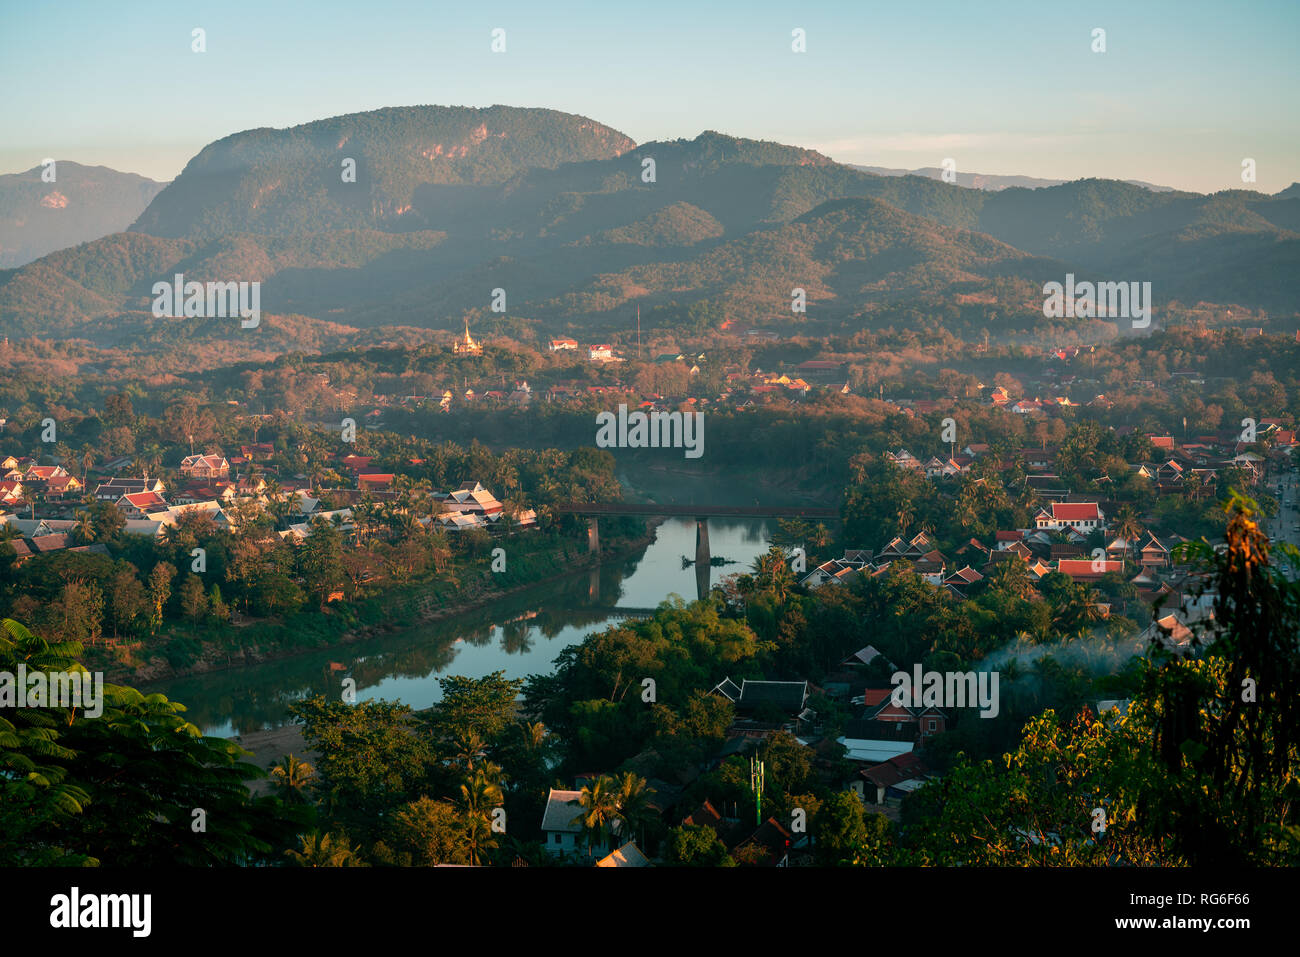 Sunset in Lunag Prabang, Laos. Beautiful clouds over the city. Mekong river between trees and houses. Winter in Laos - Stock Image